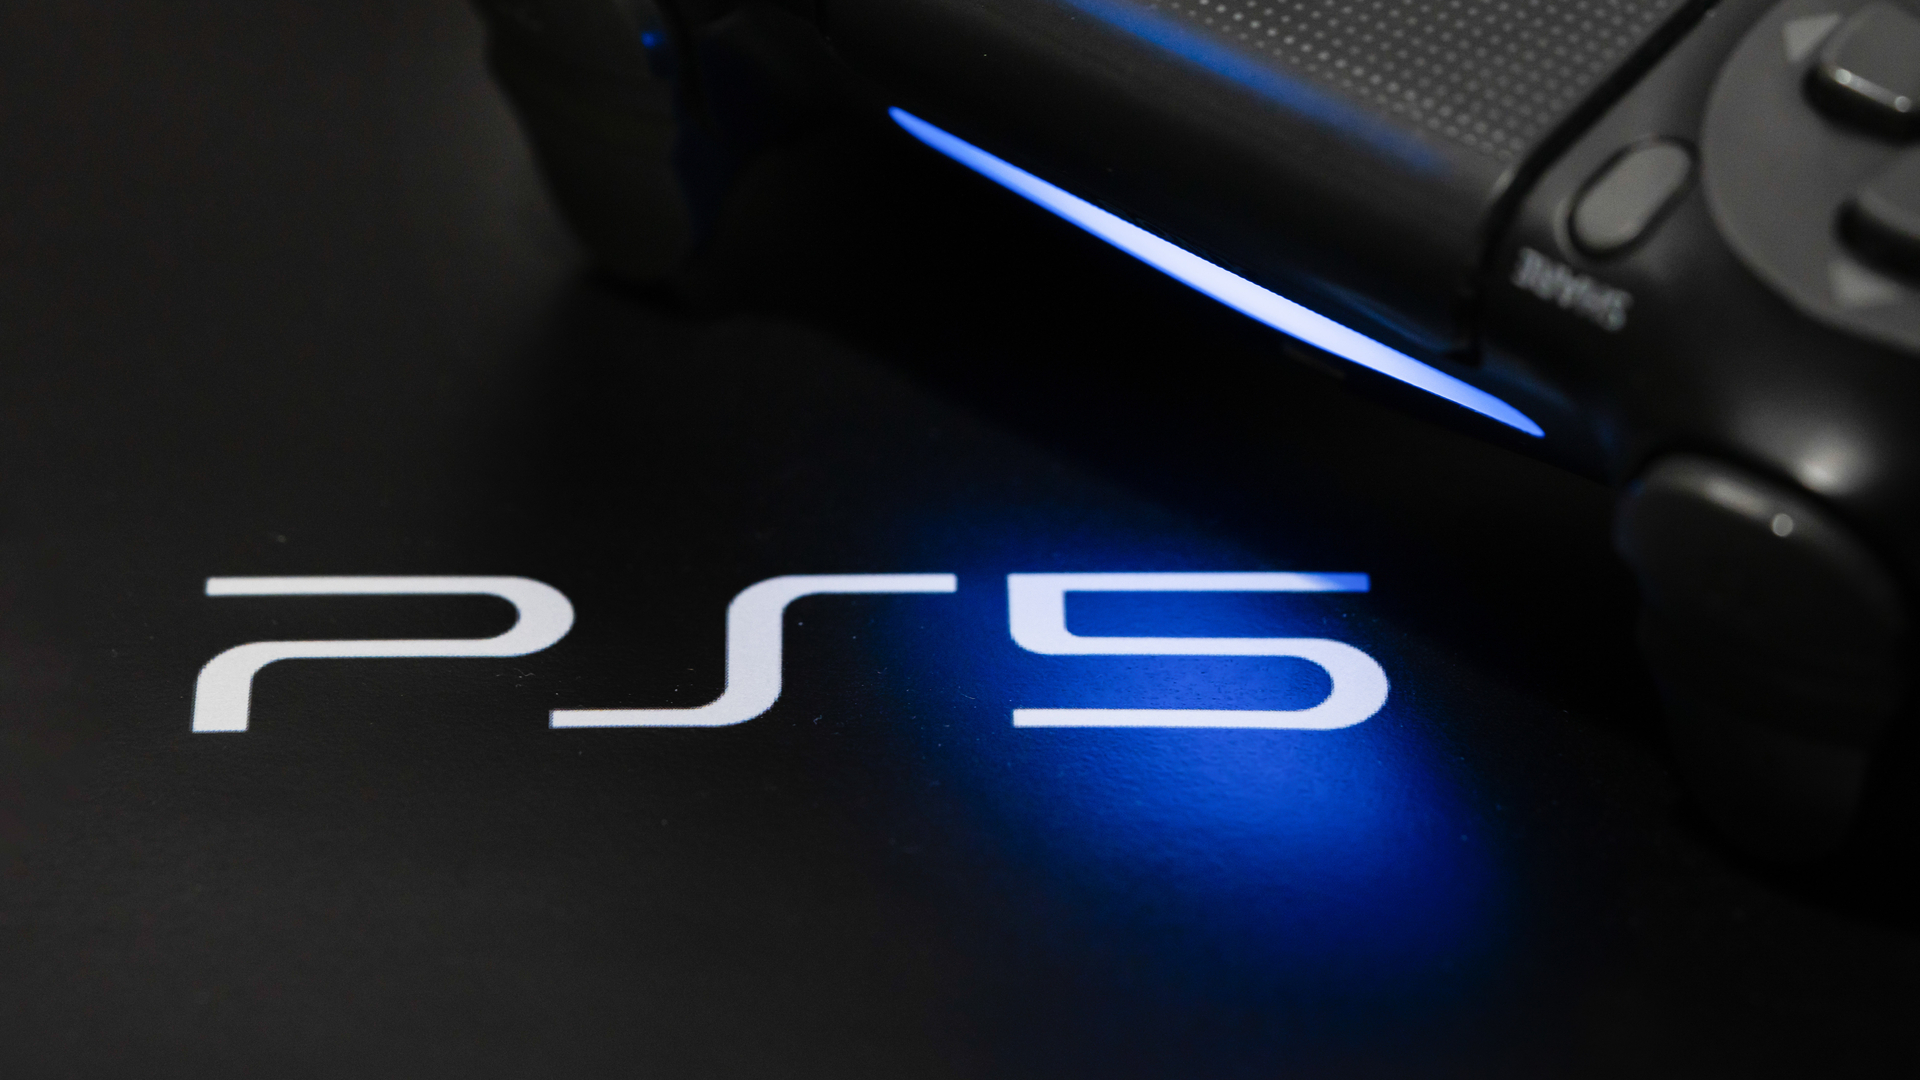 Ps5 Price And Pre Orders How Much Will The Playstation 5 Cost And